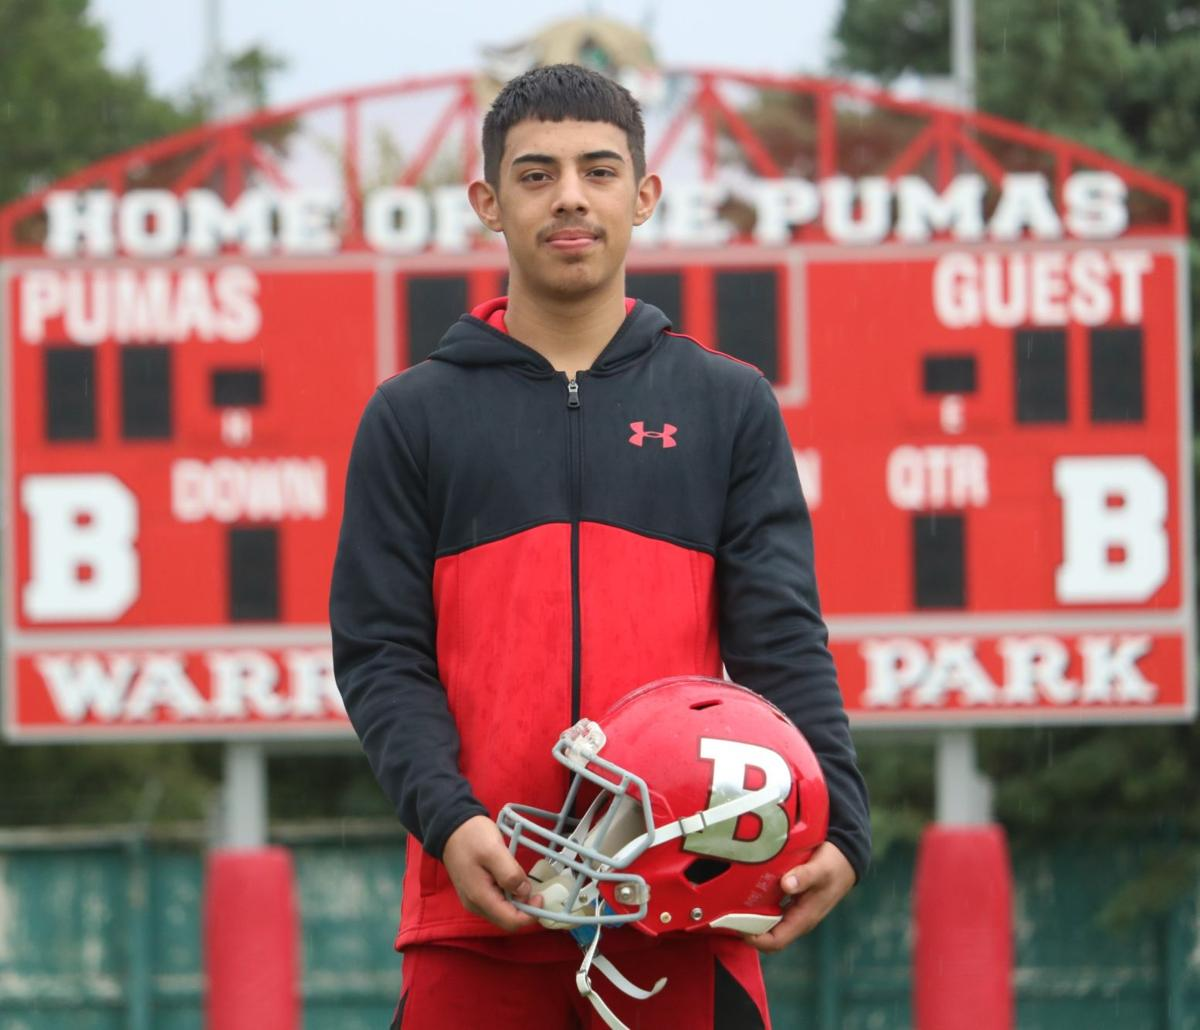 Best of Preps: David Ballesteros